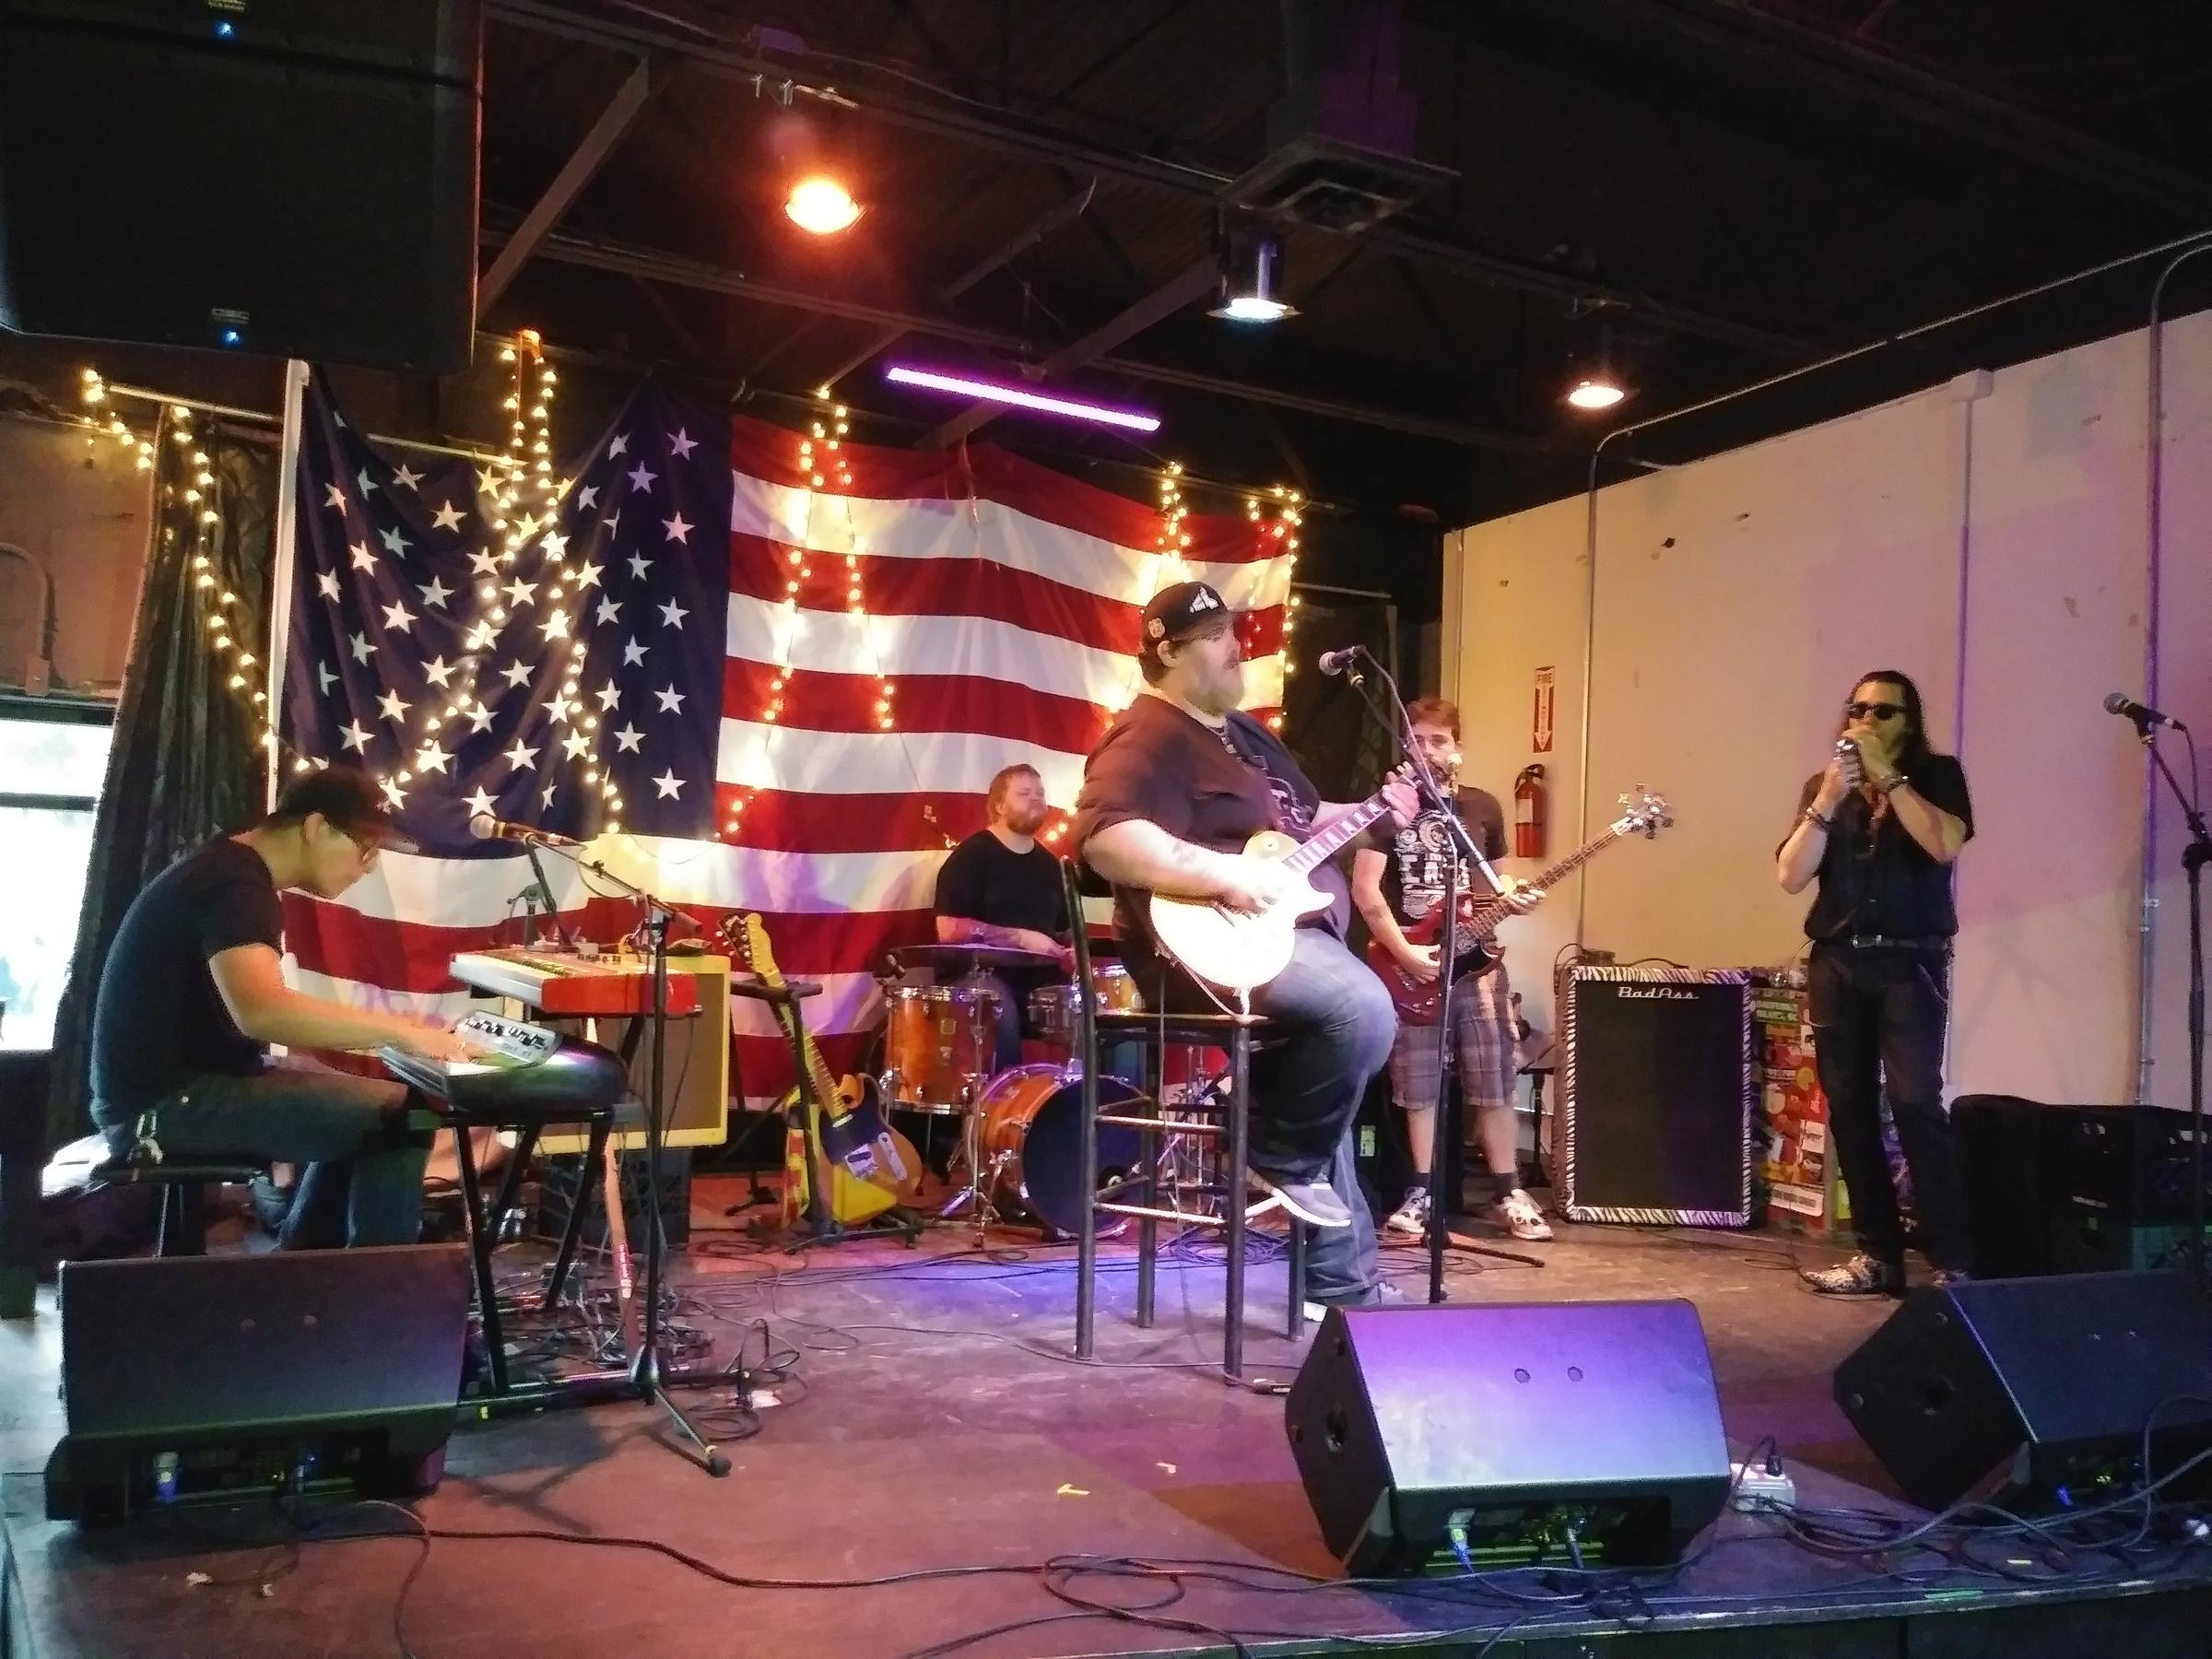 nick moss band live session on saturday night house party 9 16 17 wncw rh wncw org